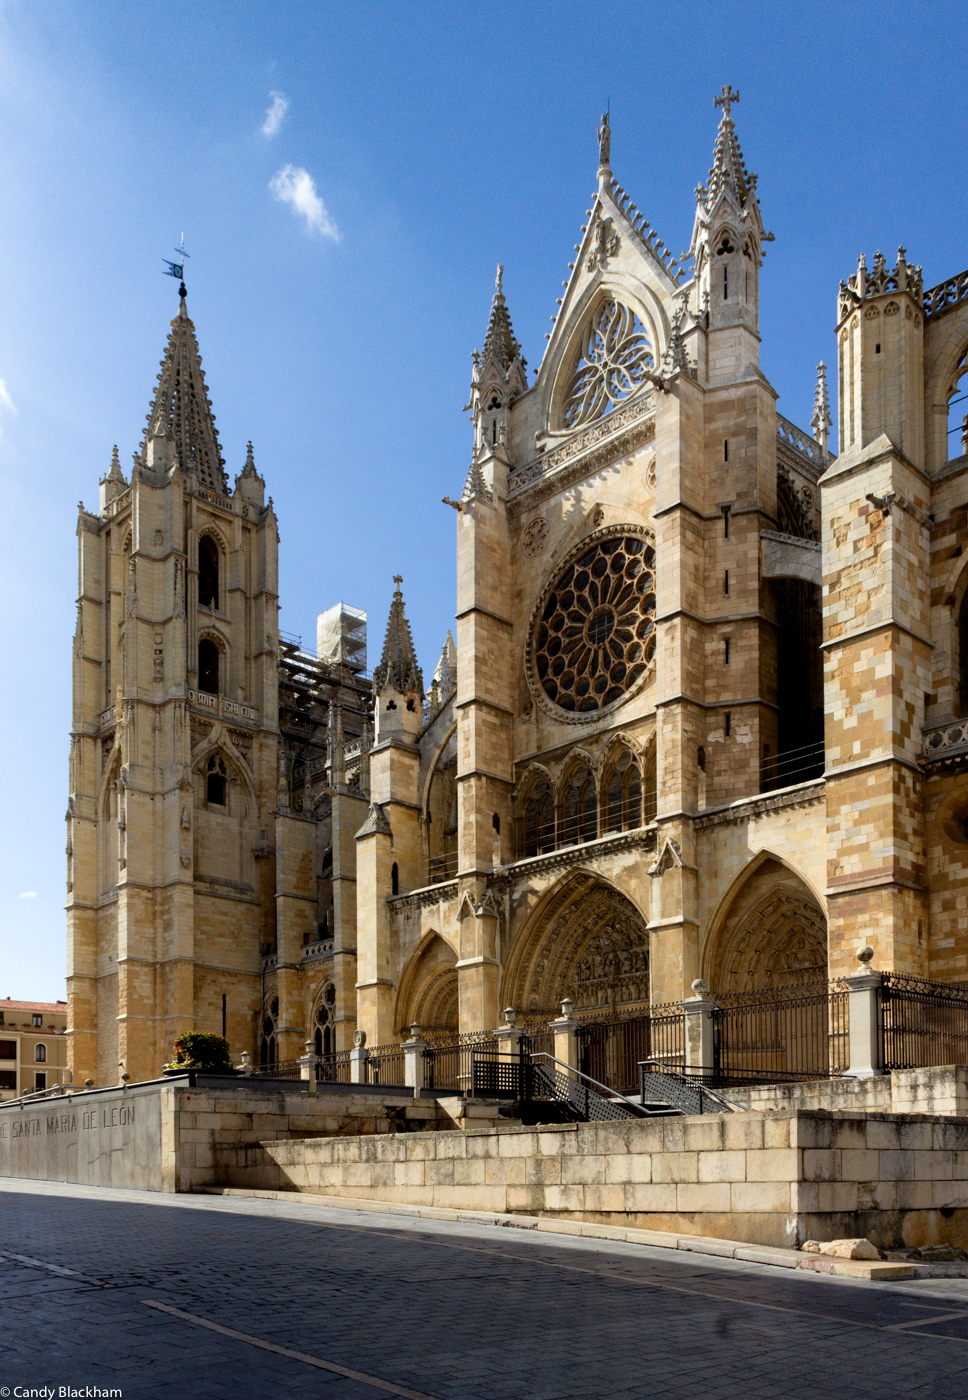 The Cathedral of Leon with the fenced entry to an underground excavation and display